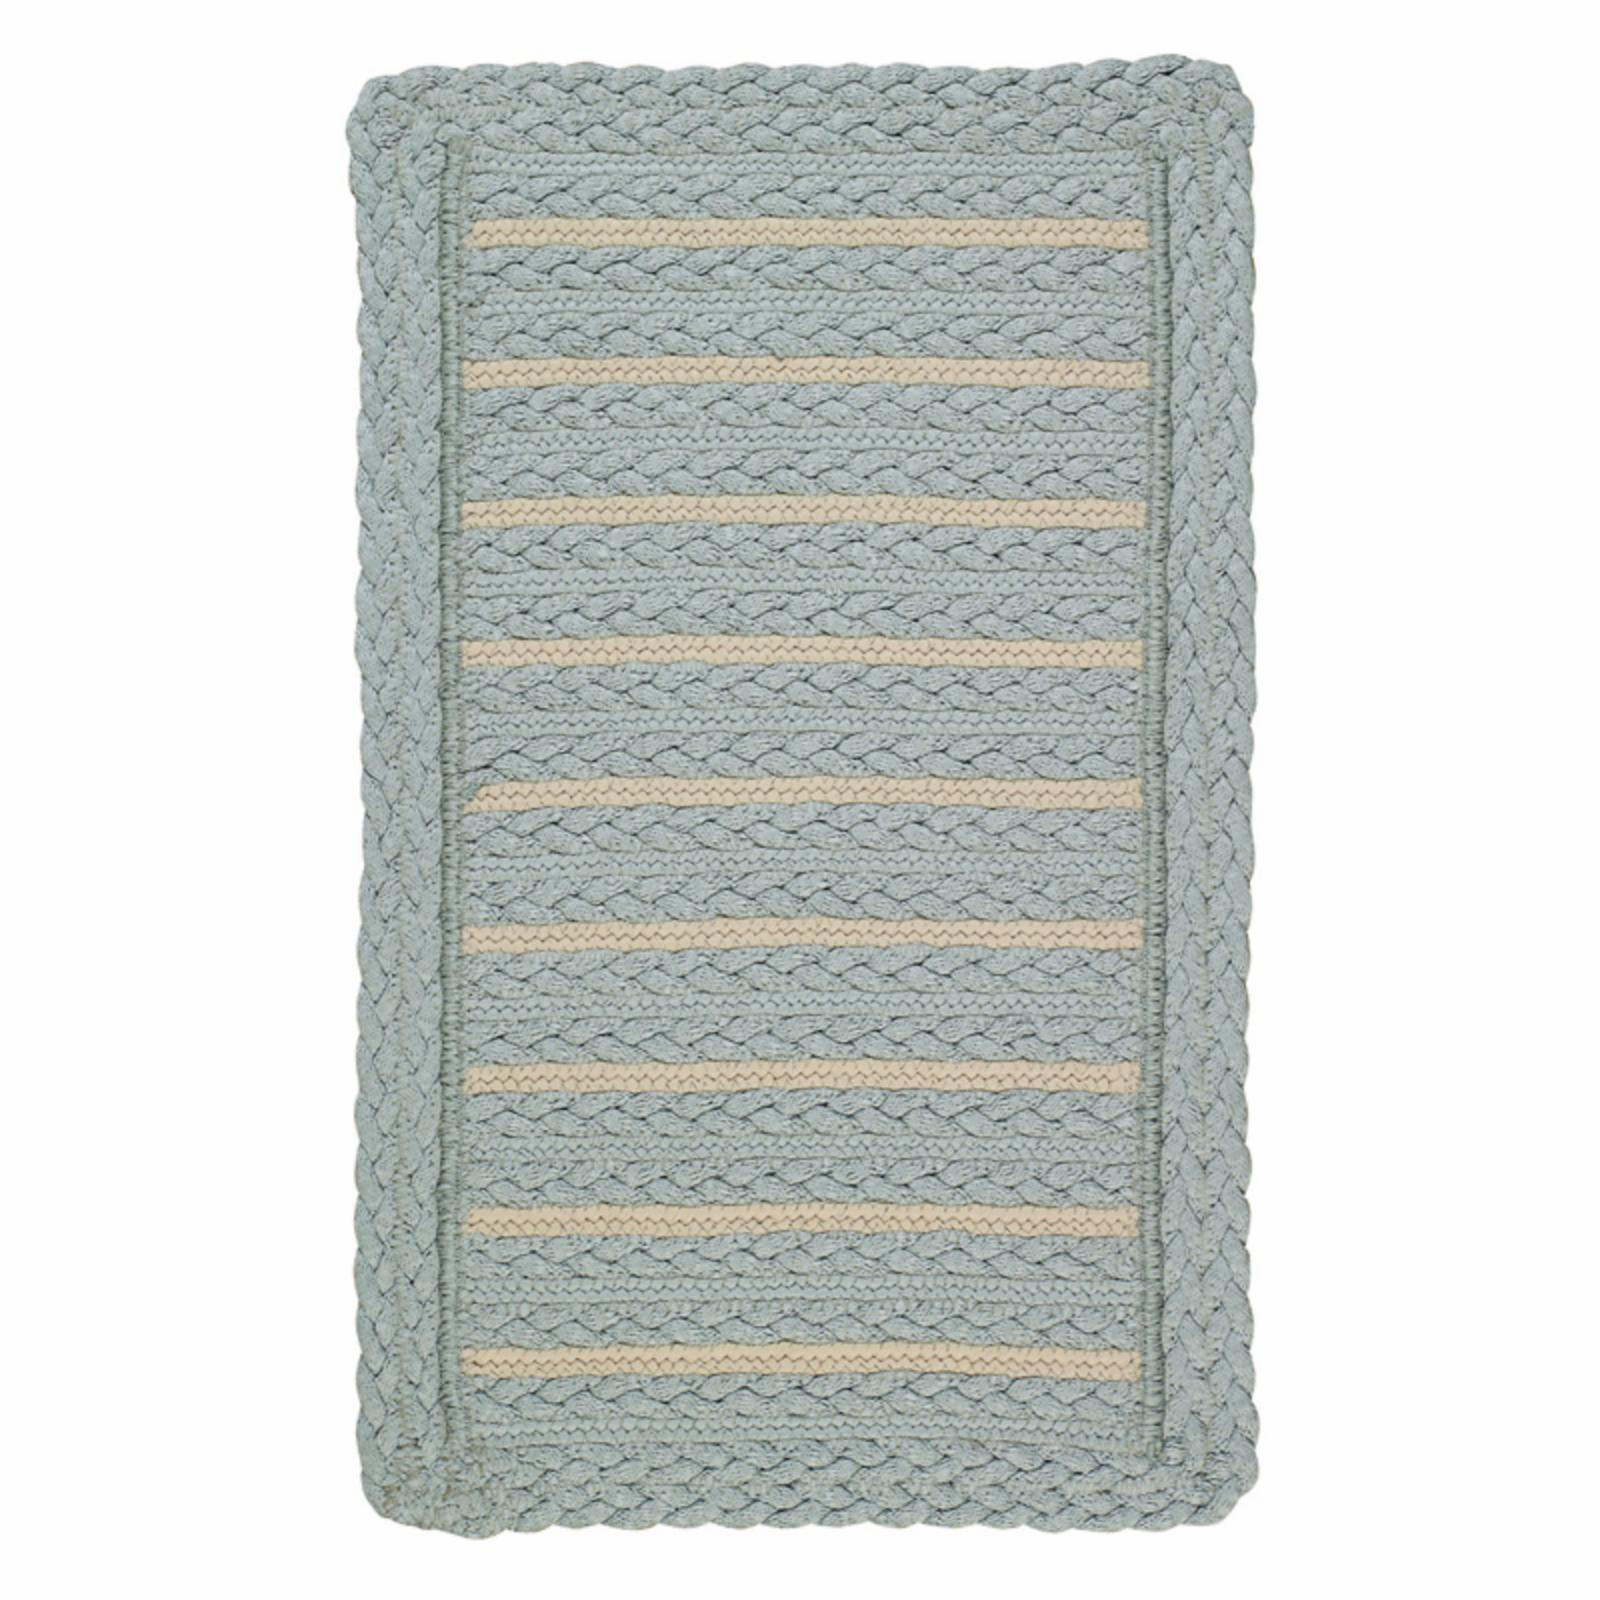 Boathouse 0257 Cross Sewn Braided Rectangle Area Rug - Blue - 0257XS05060506400